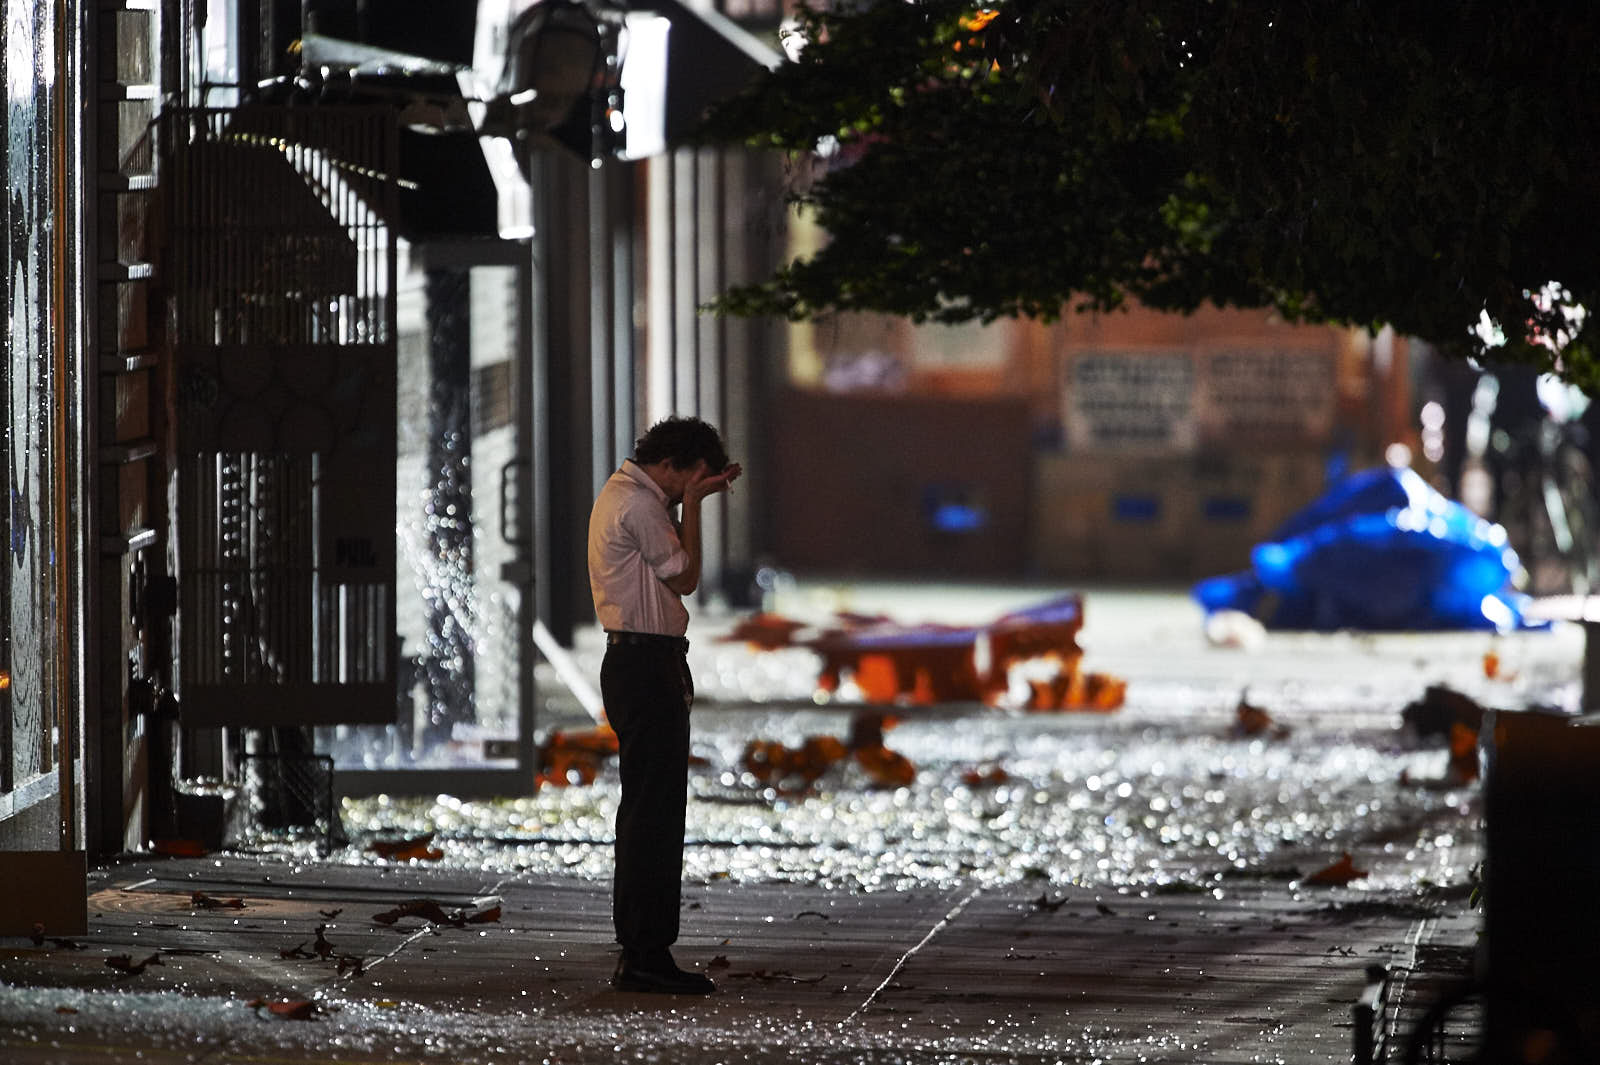 A man is surrounded by debris from Saturday's bomb blast on Monday, September 19, 2016 in New York. An all-out search was launched by the NYPD and federal law enforcement for the terrorists who set off a bomb on a crowded Manhattan street — and planned to detonate a second one four blocks away. Twenty-nine people were injured in the explosions.